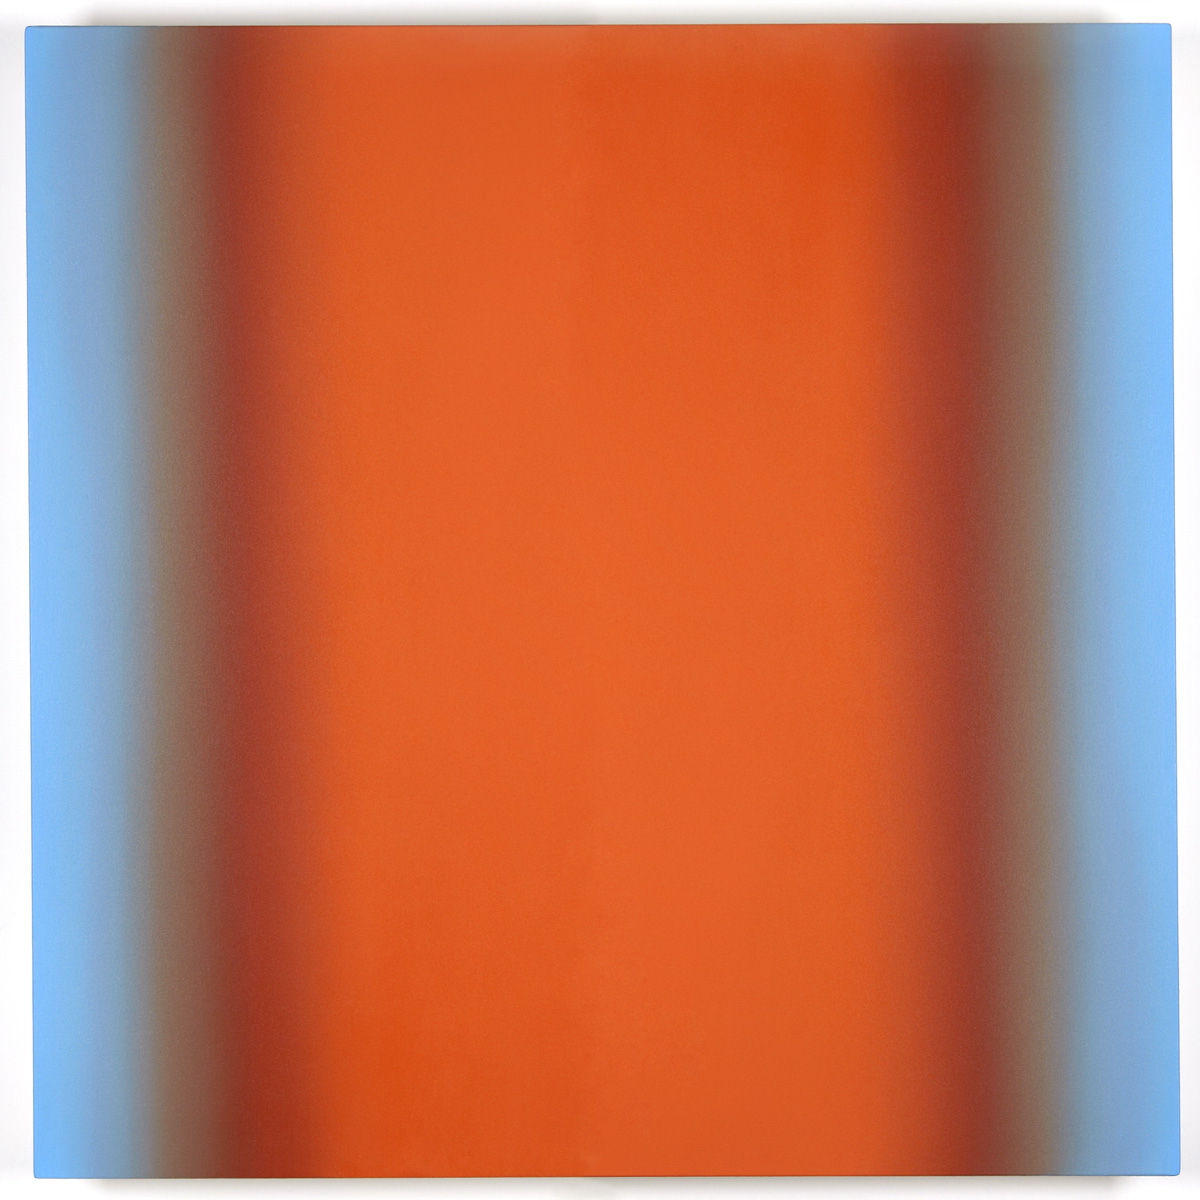 Blue Orange 11-S4848 (Orange Deep), Interplay Series, 2013, oil on canvas on custom beveled stretcher, 48 x 48 in. (122 x 122 cm.)